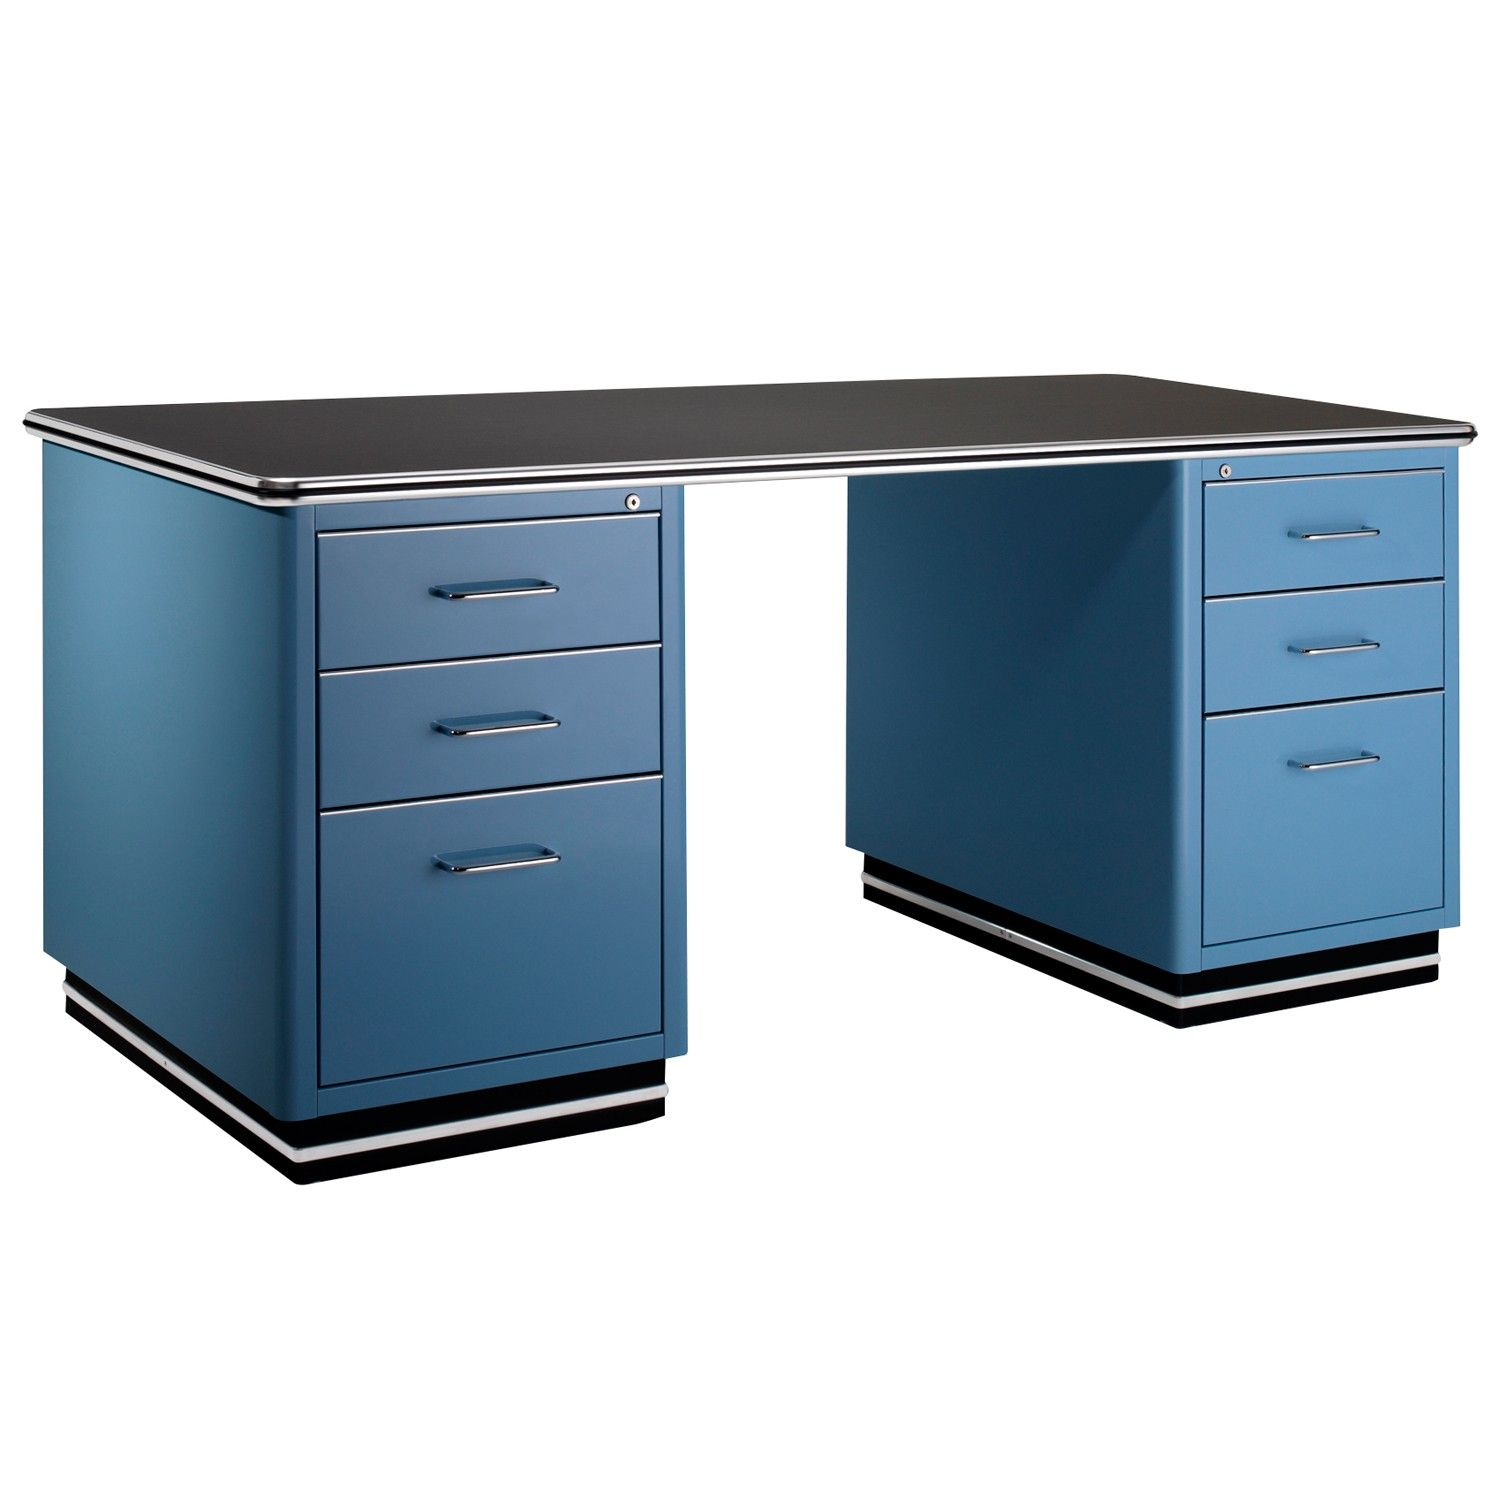 m ller tb 228 3 bureau 175x80 flinders verzendt gratis. Black Bedroom Furniture Sets. Home Design Ideas